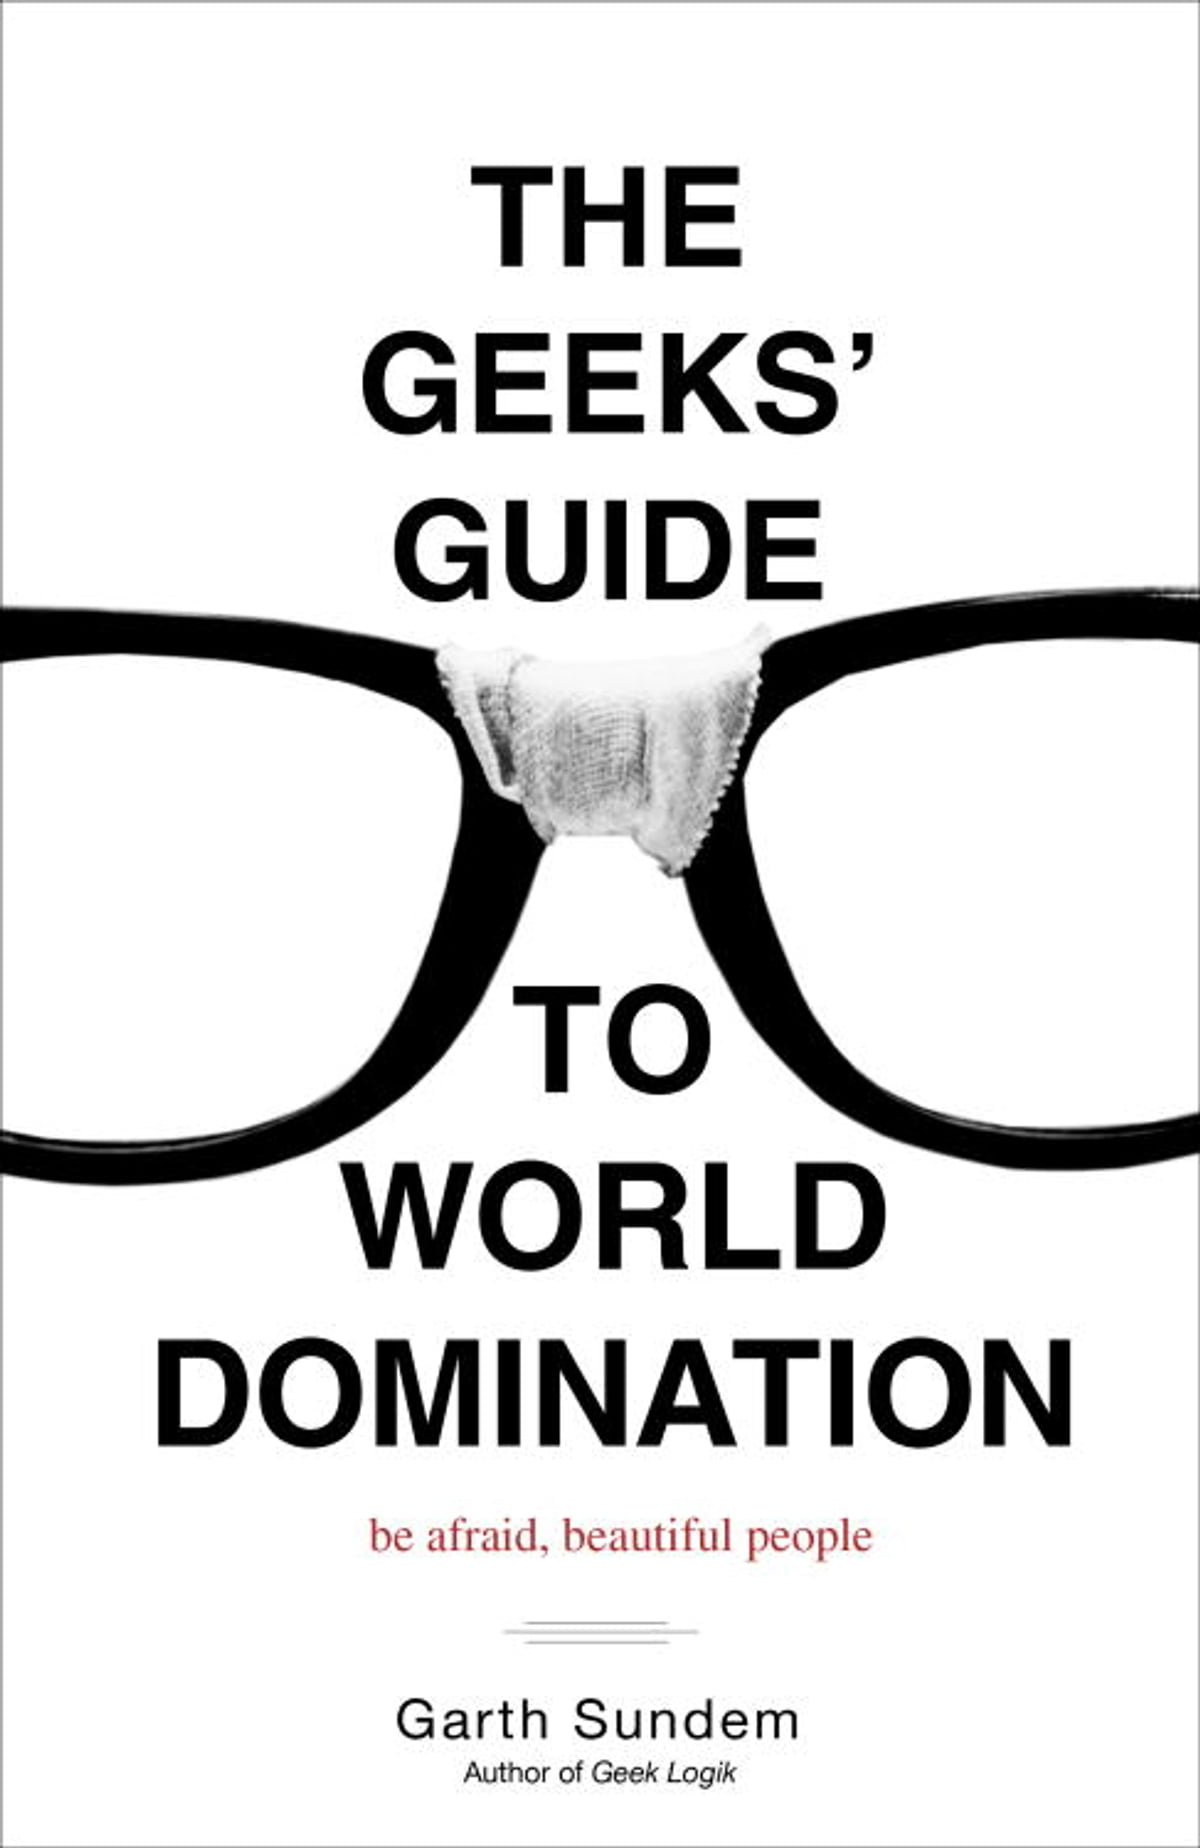 The Geeks' Guide to World Domination eBook by Garth Sundem